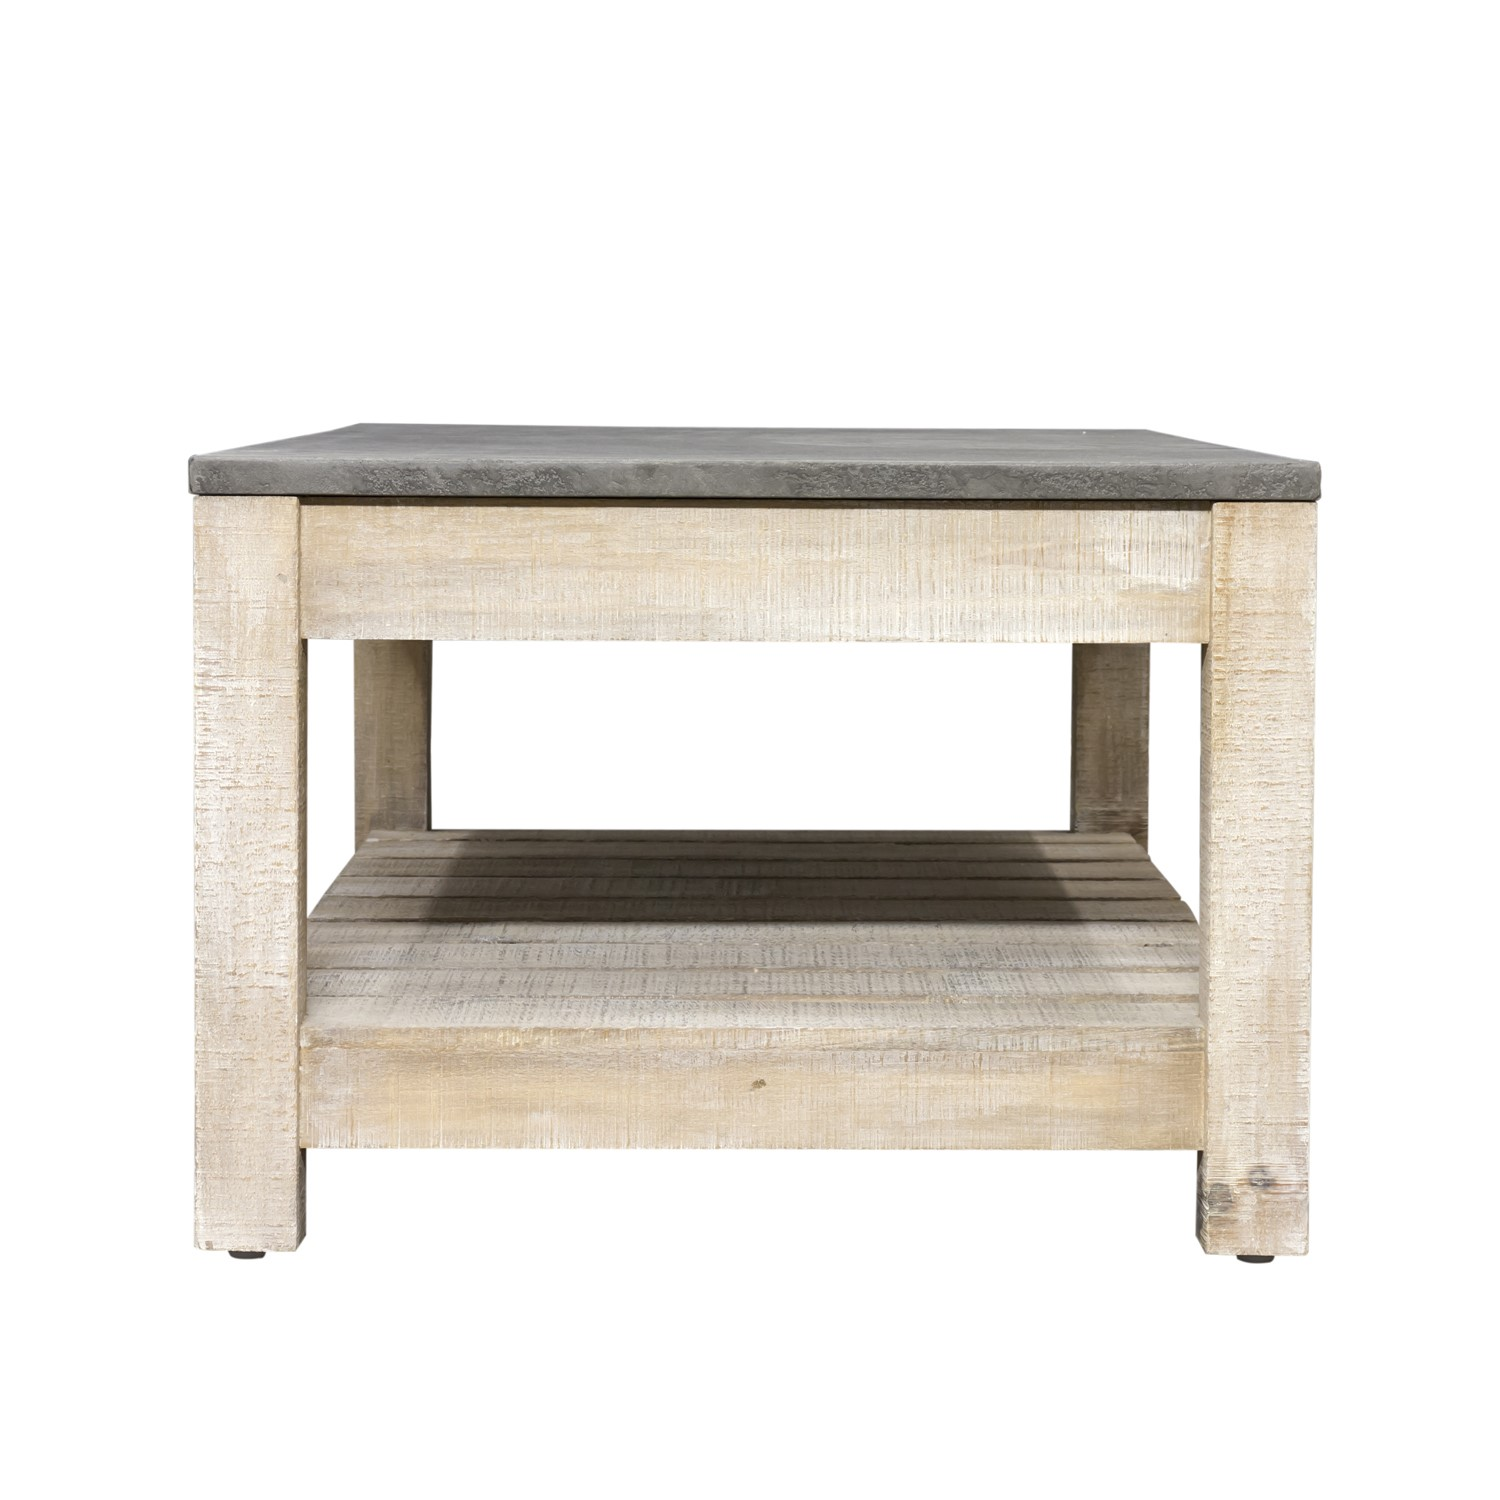 Signature North Brooklyn Distressed Coffee Table With Faux Concrete Table Top